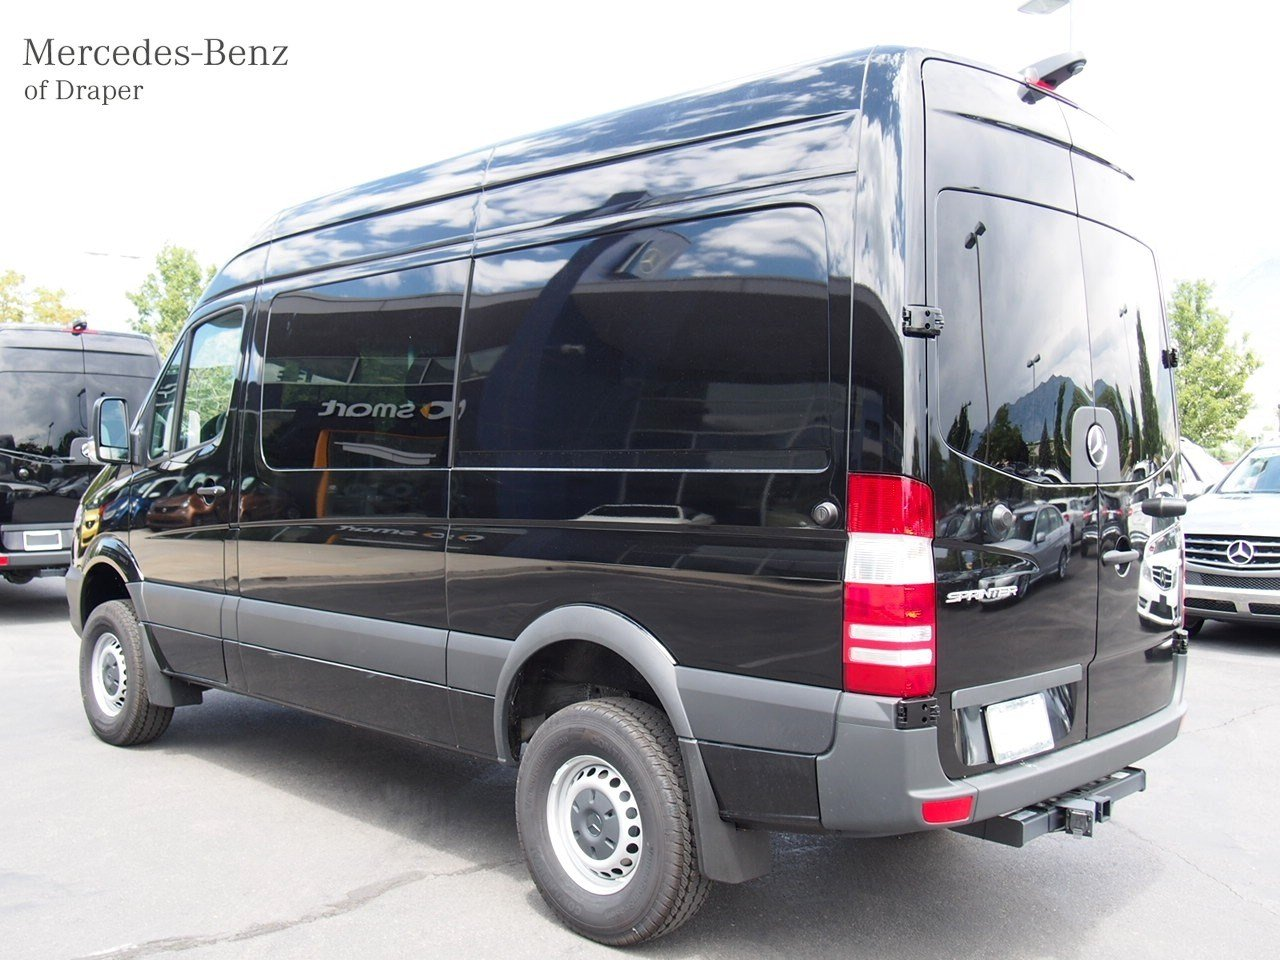 new 2017 mercedes benz sprinter crew vans crew van in. Black Bedroom Furniture Sets. Home Design Ideas